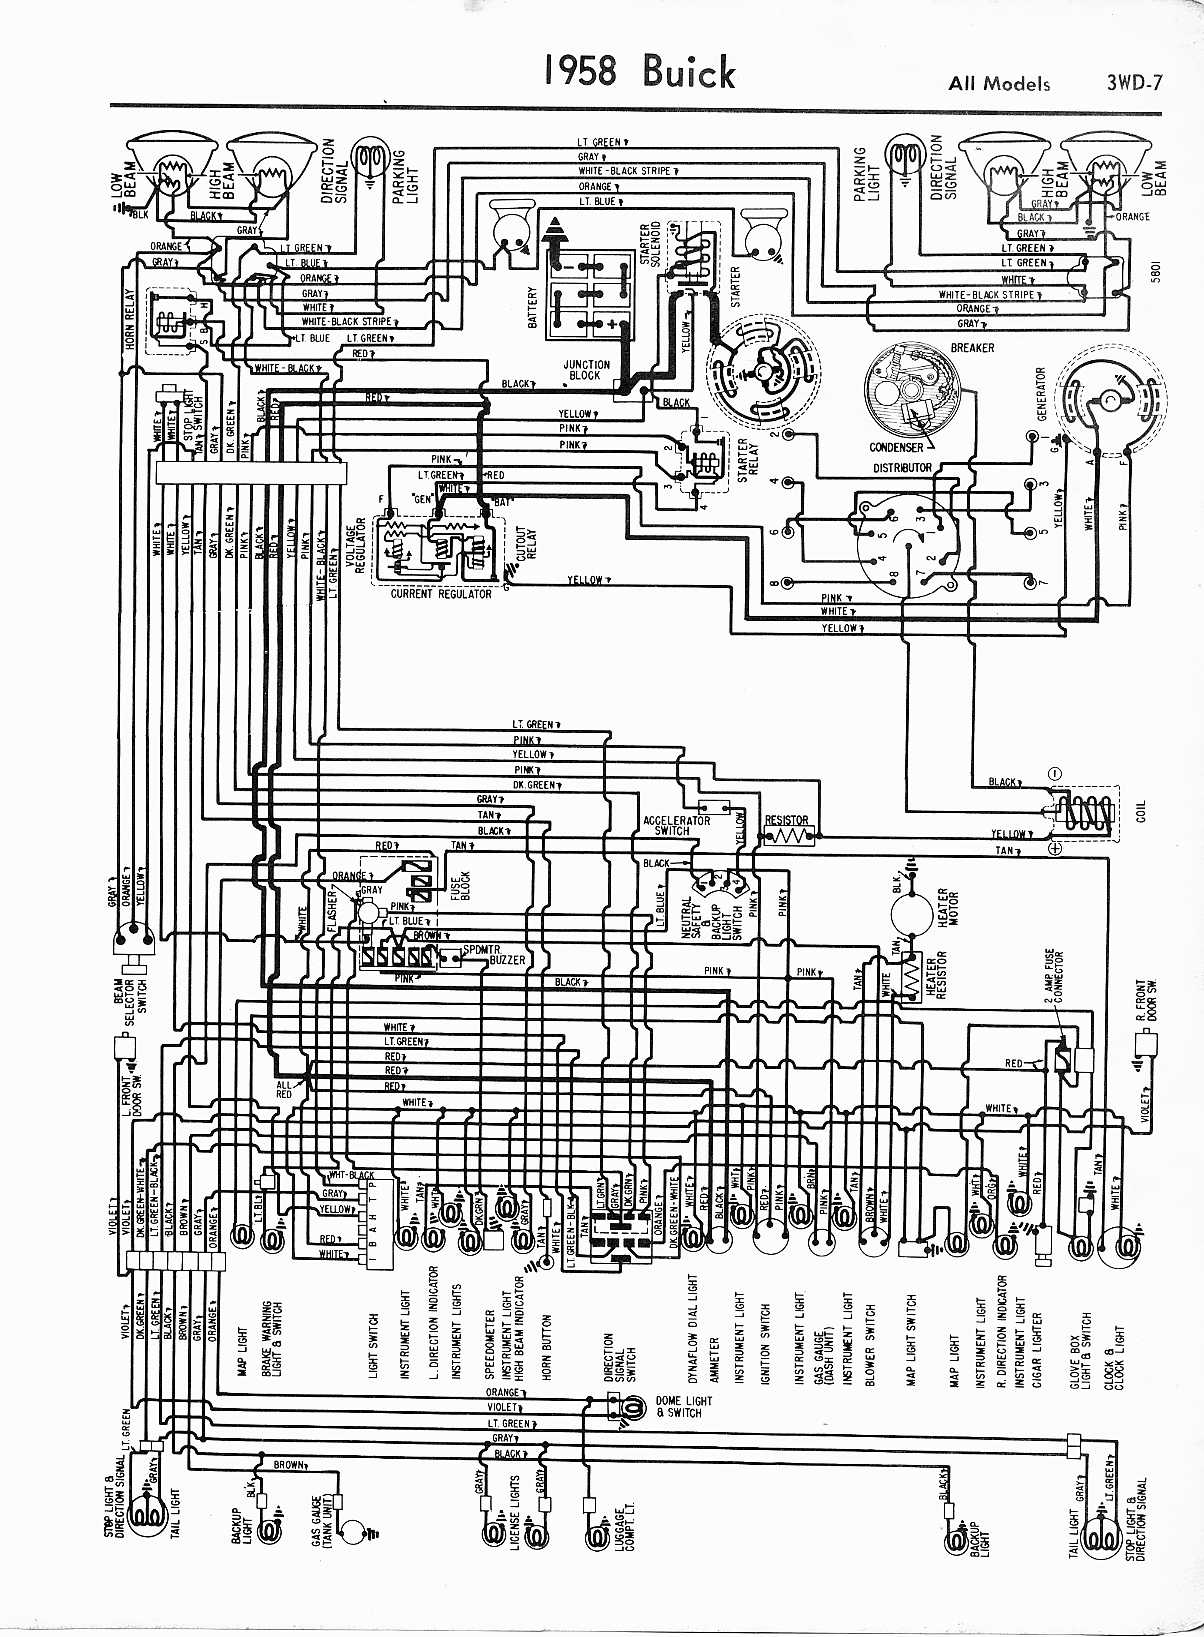 buick wiring diagram wiring diagrams online 1958 all models 1957 buick wiring